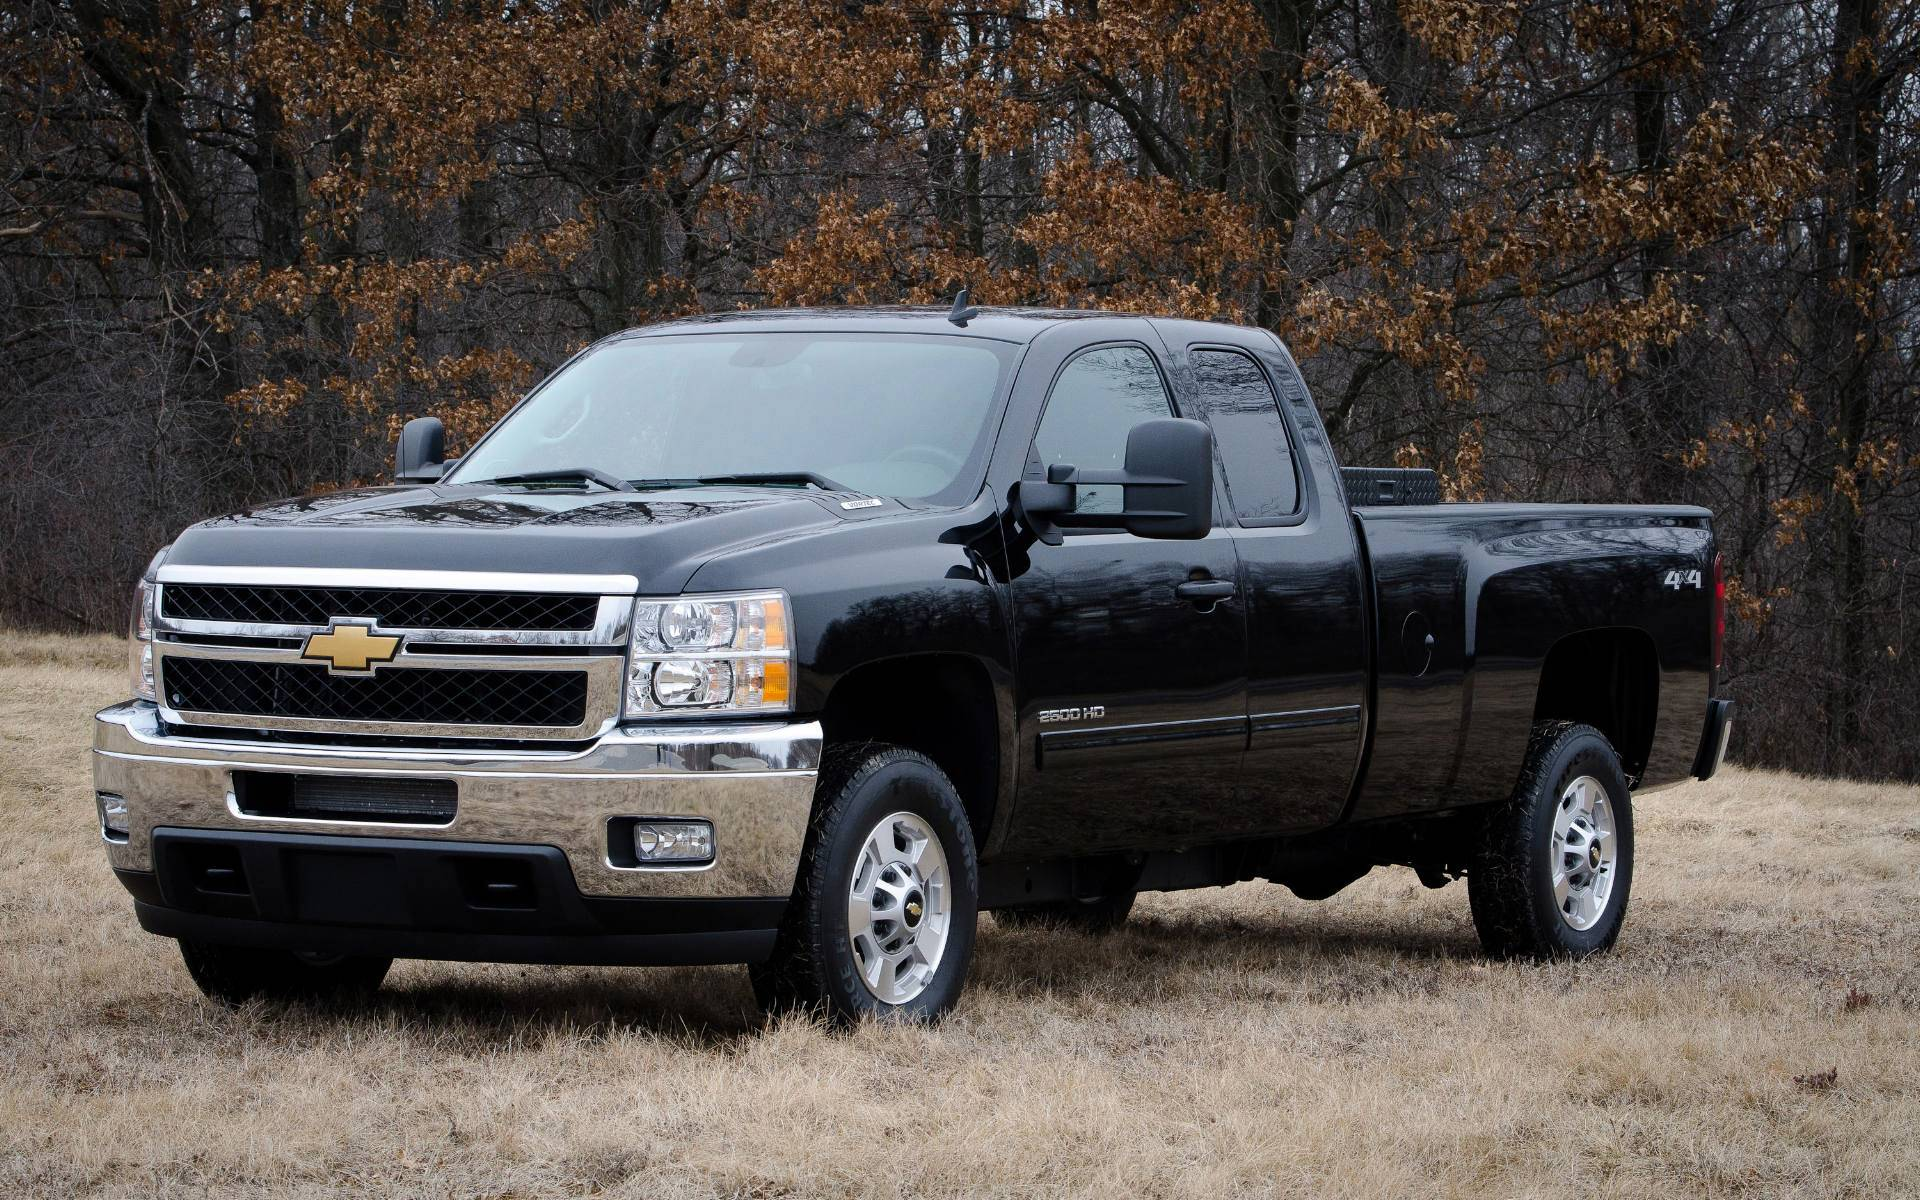 Chevy Silverado Wallpapers - Wallpaper Cave